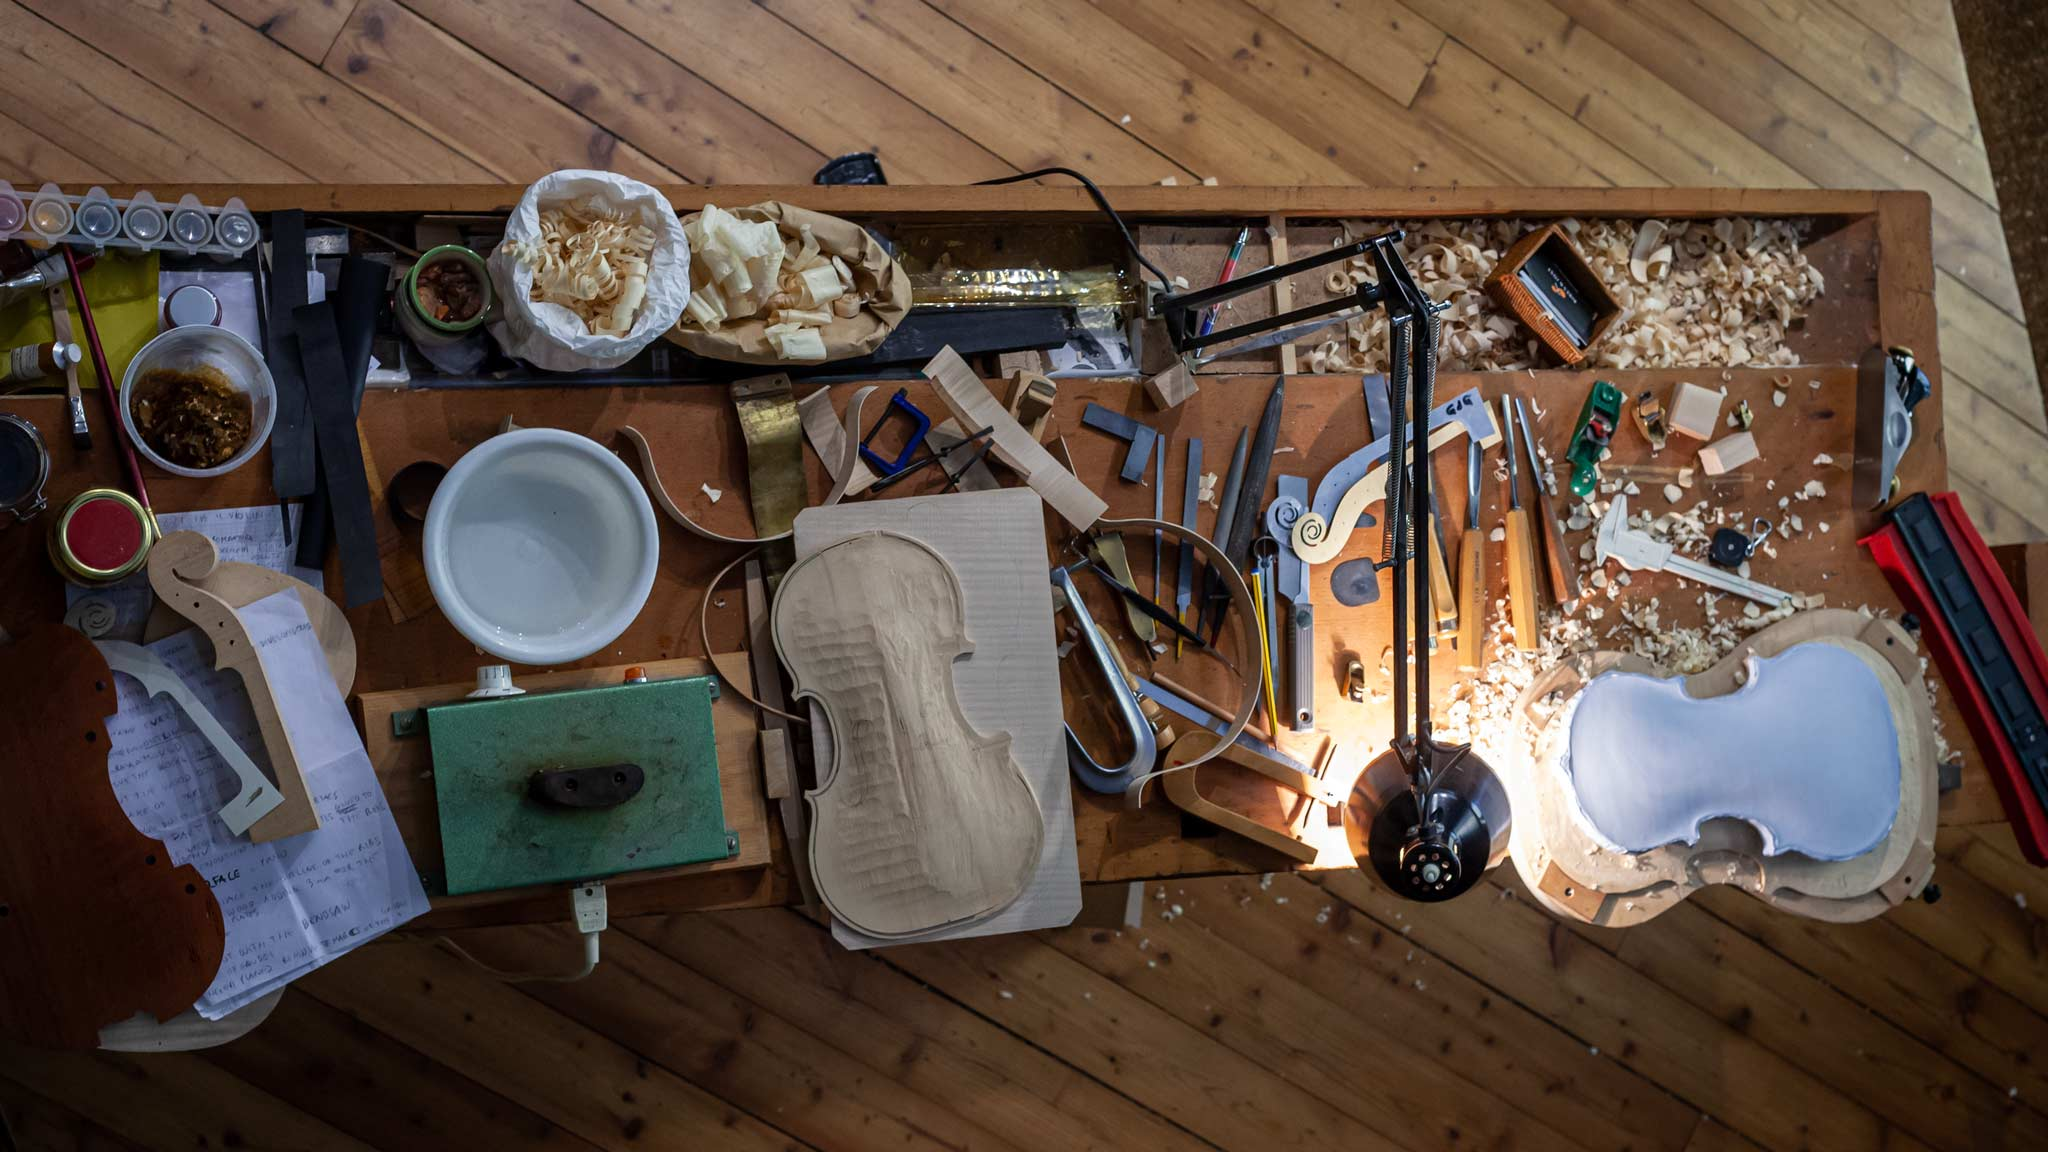 Looking down on a table where Violins are made full of various tools in Cremona